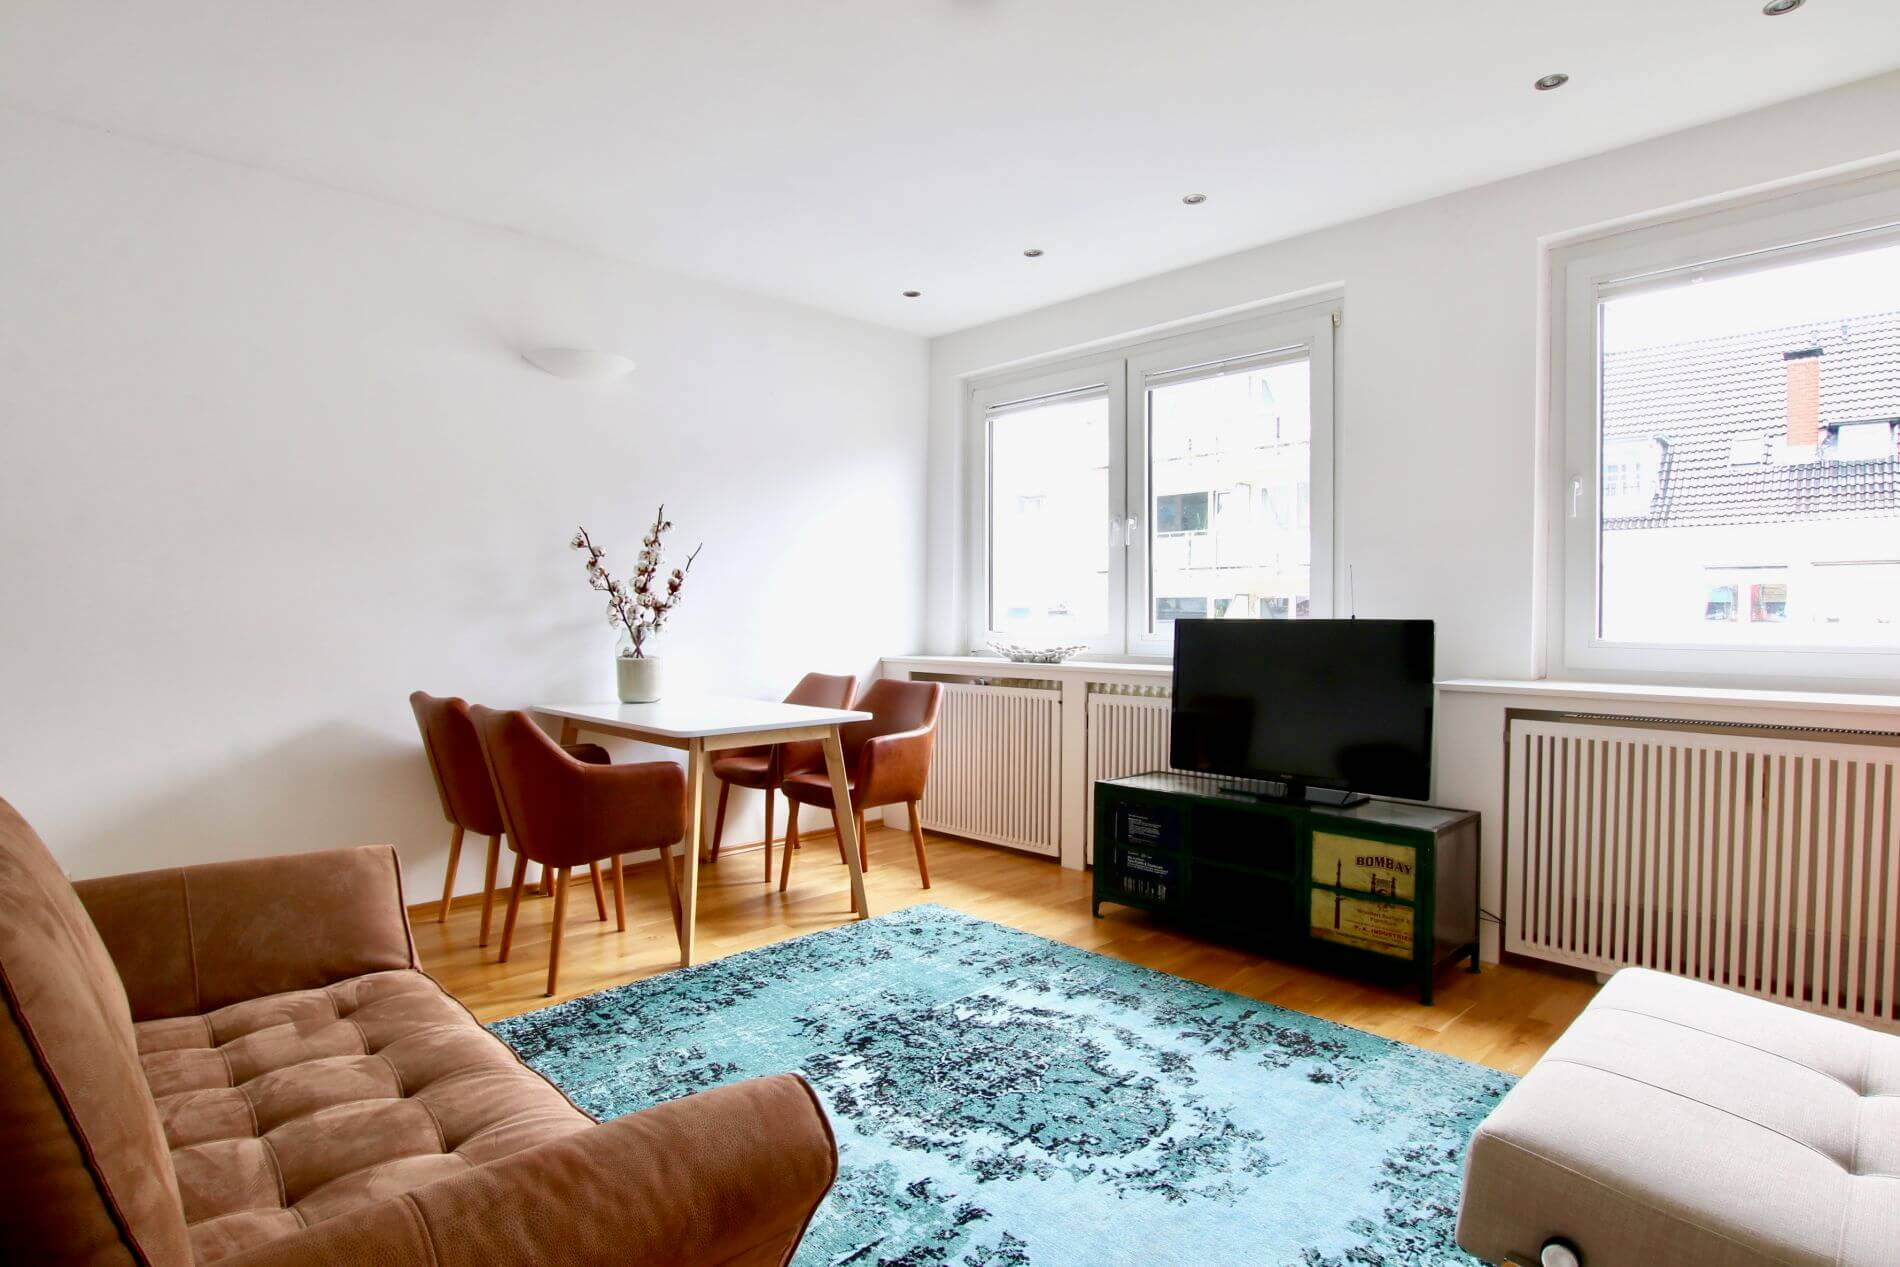 Furnished property for rent in a great location in Cologne